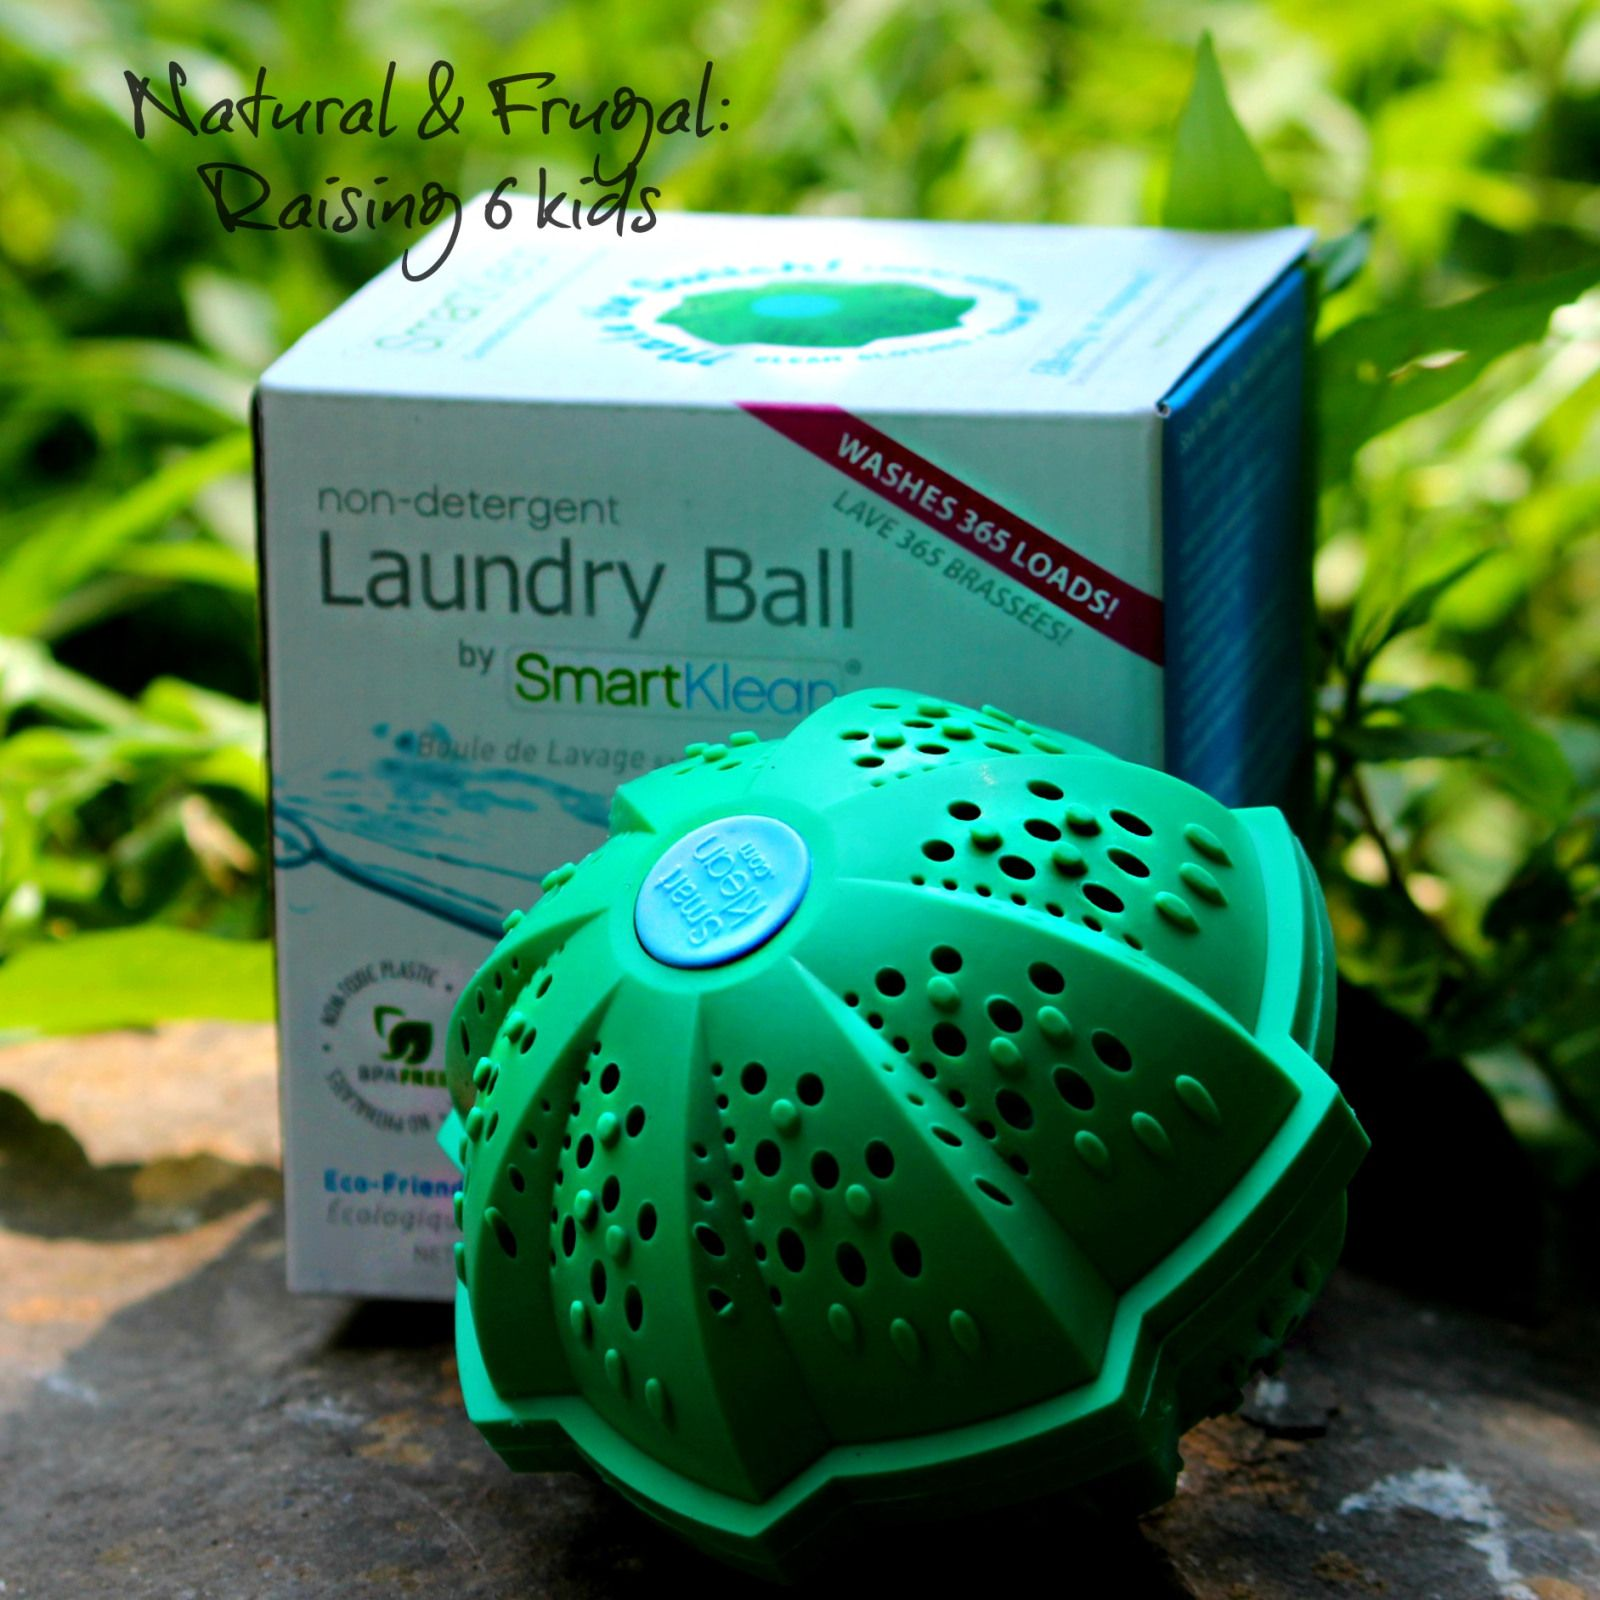 How to Order a SmartKlean Laundry Ball - Free S&H blog post Affiliate---- Natural & Frugal: raising 6 kids --- Buy a Landry Ball ---- NFR6K